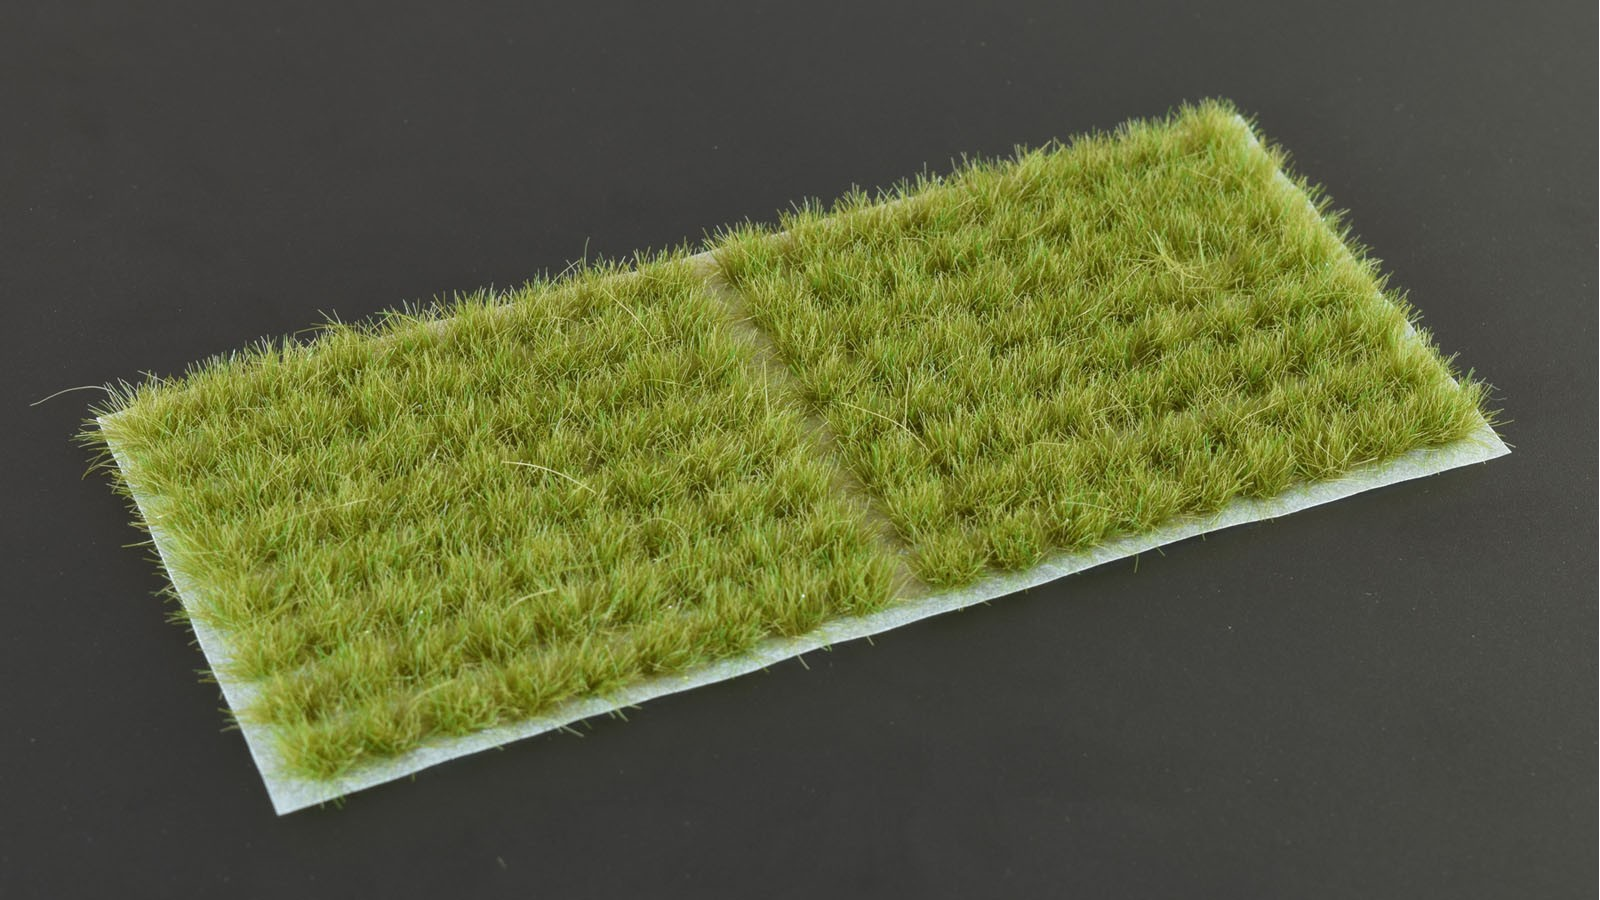 6mm Grass Tufts - Dry Green Small